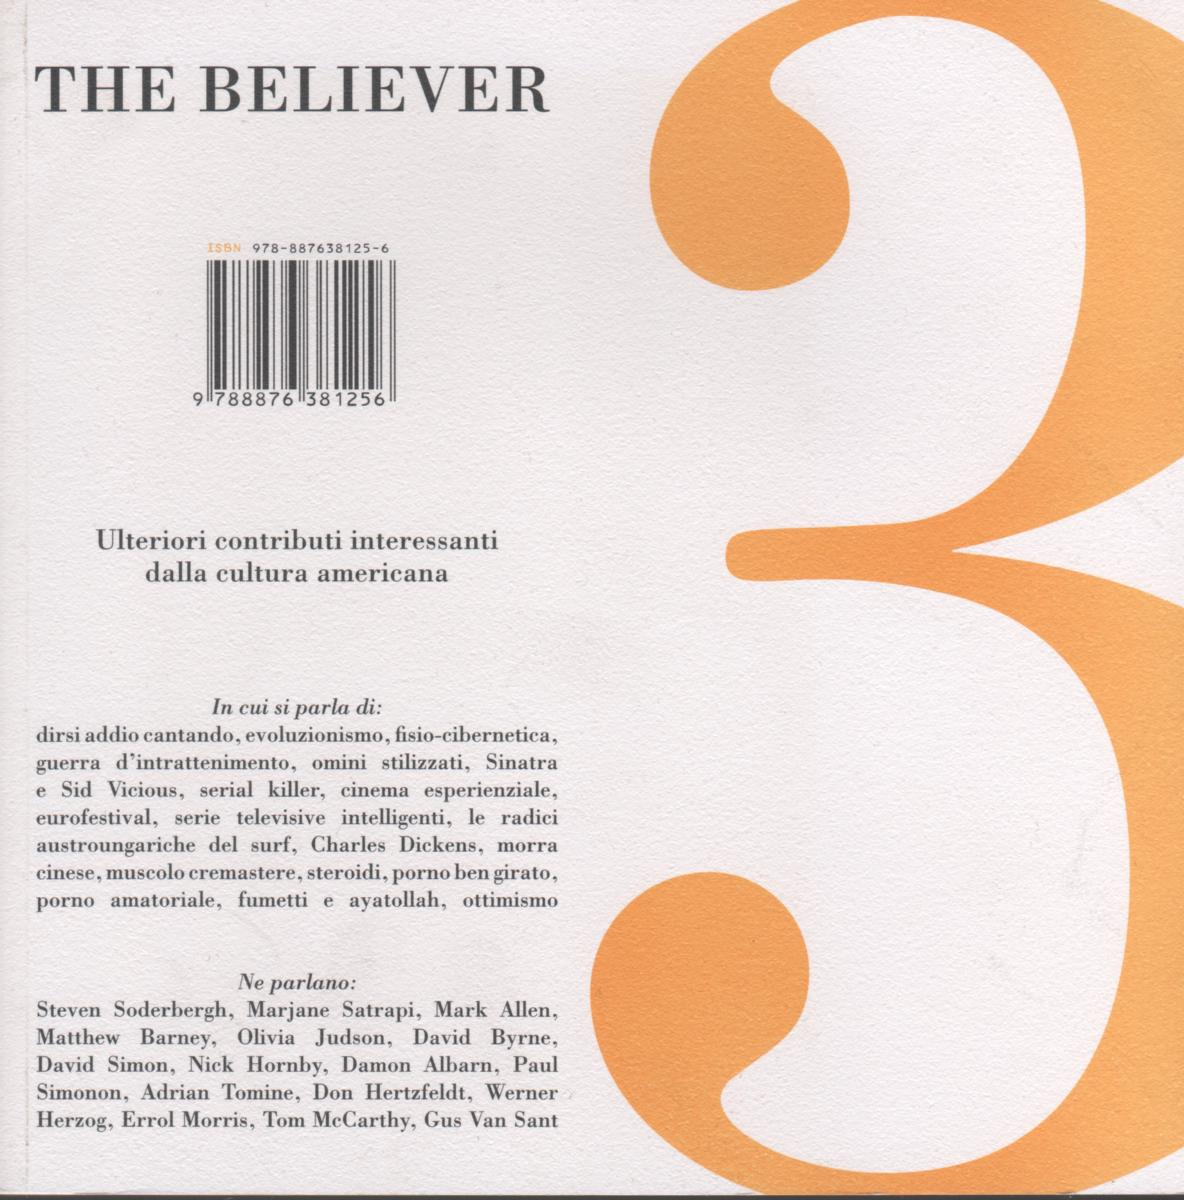 The Believer/3